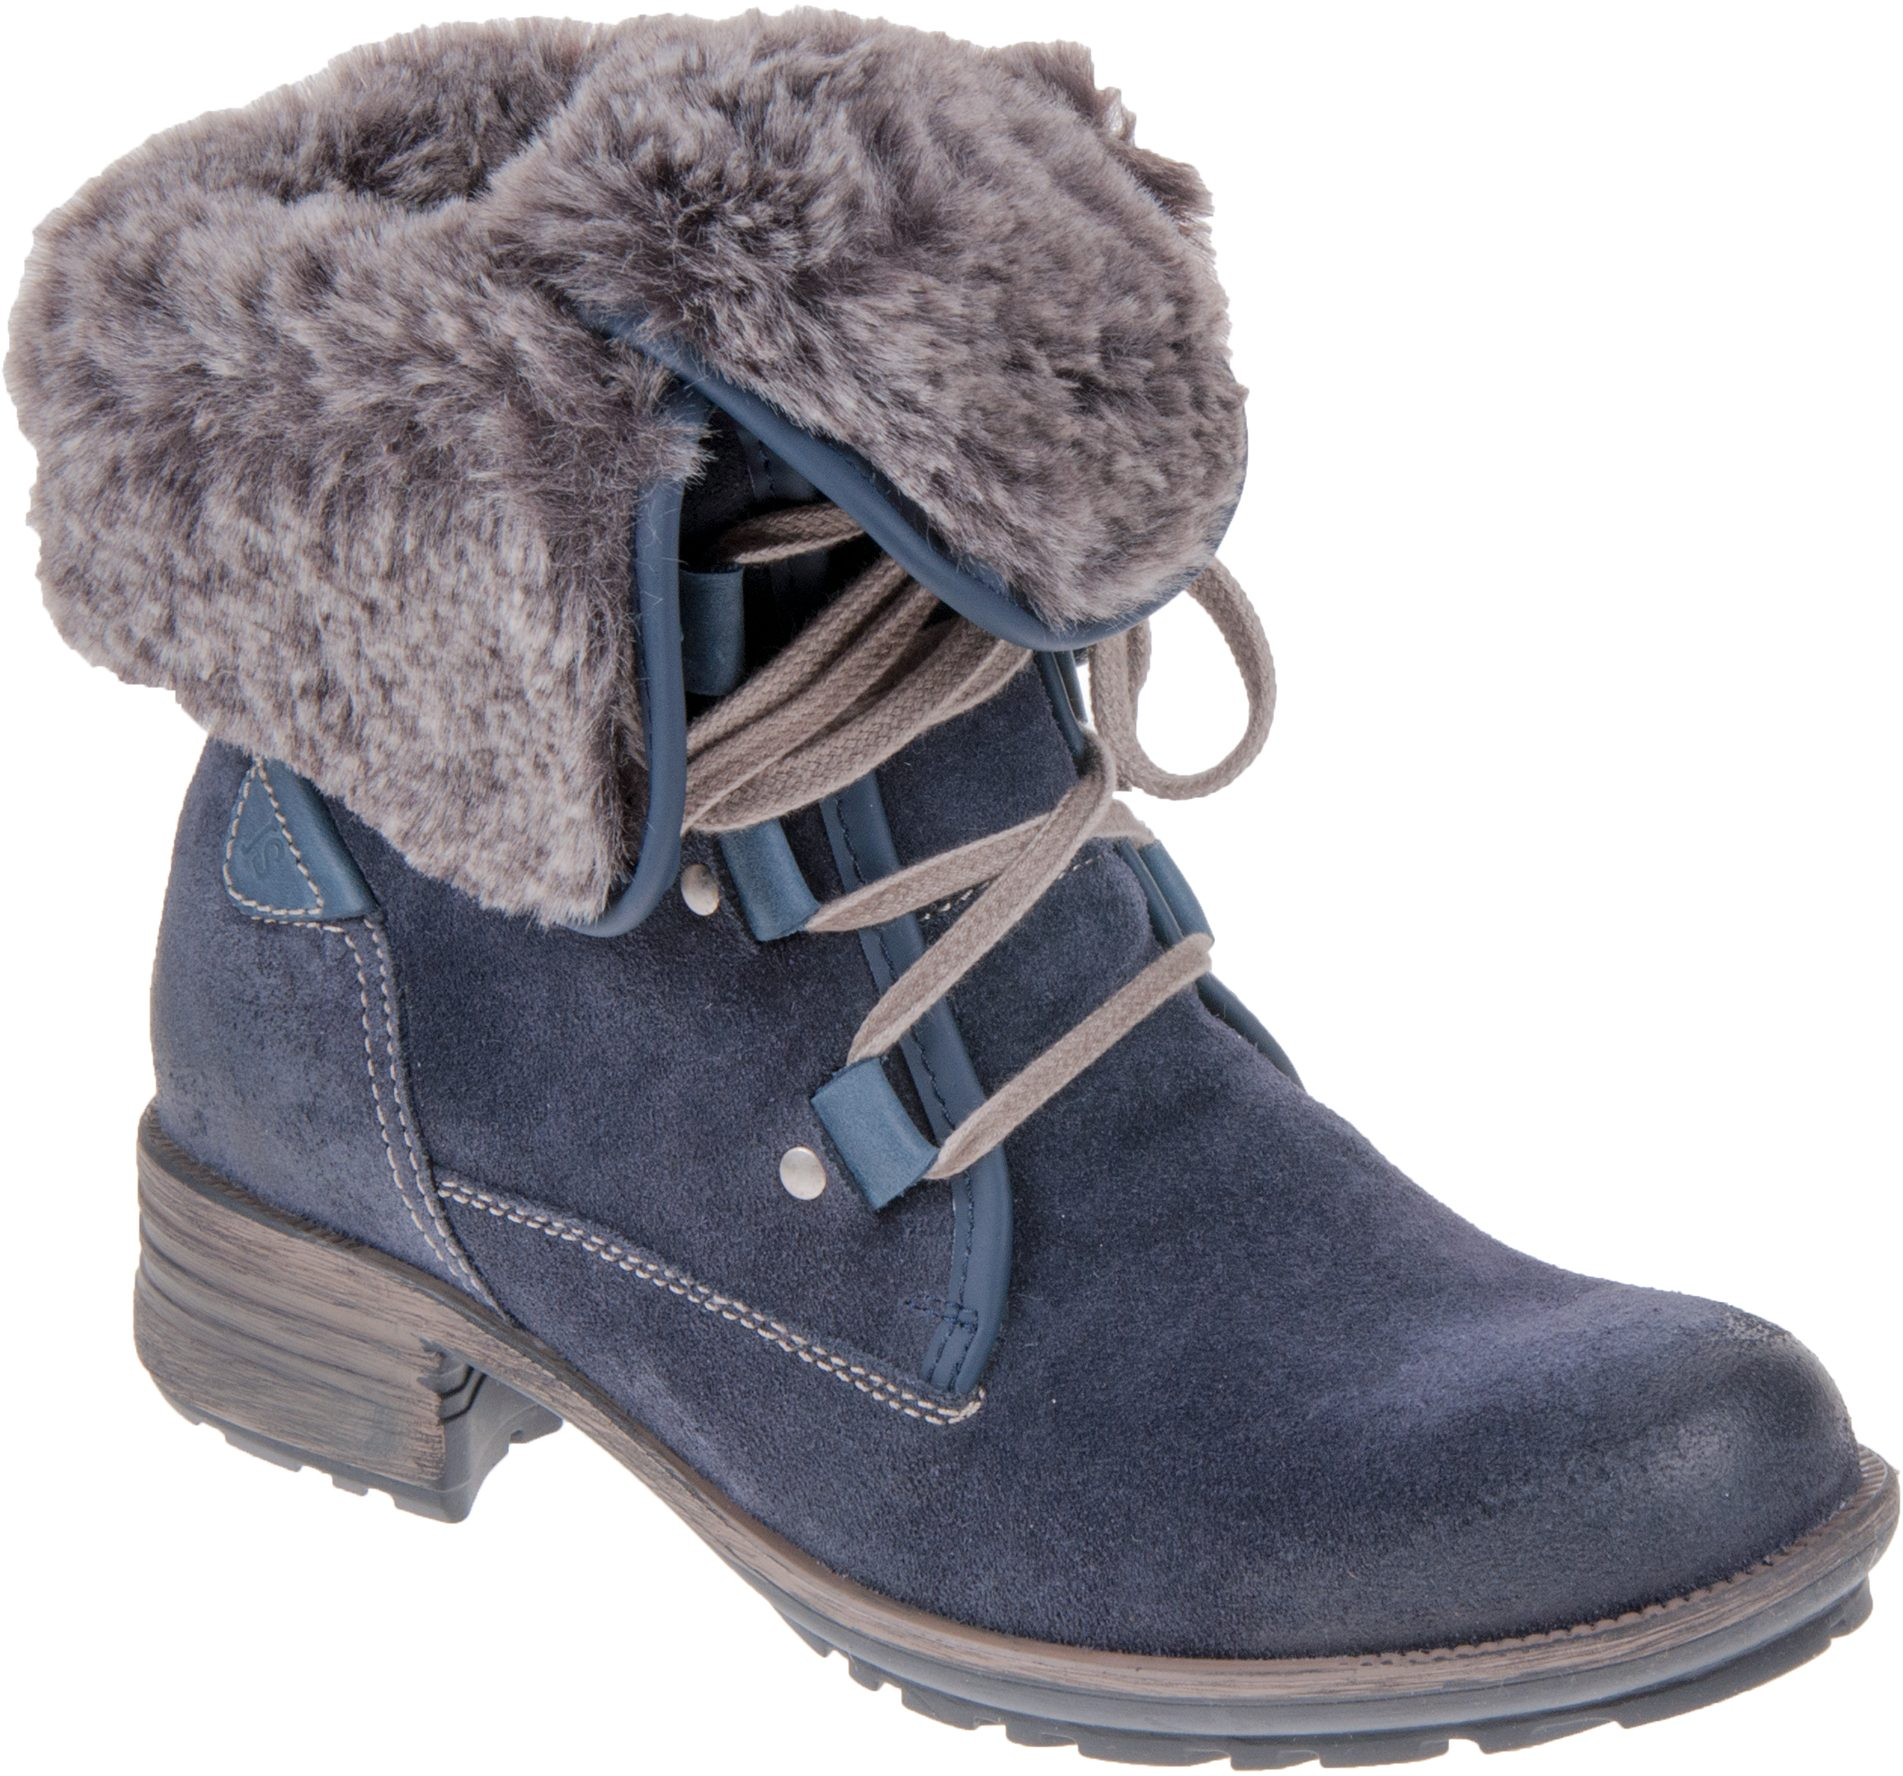 feeac37c6f11c Josef Seibel Sandra 04 Navy Suede 93688 PL949 596 - Ankle Boots - Humphries  Shoes